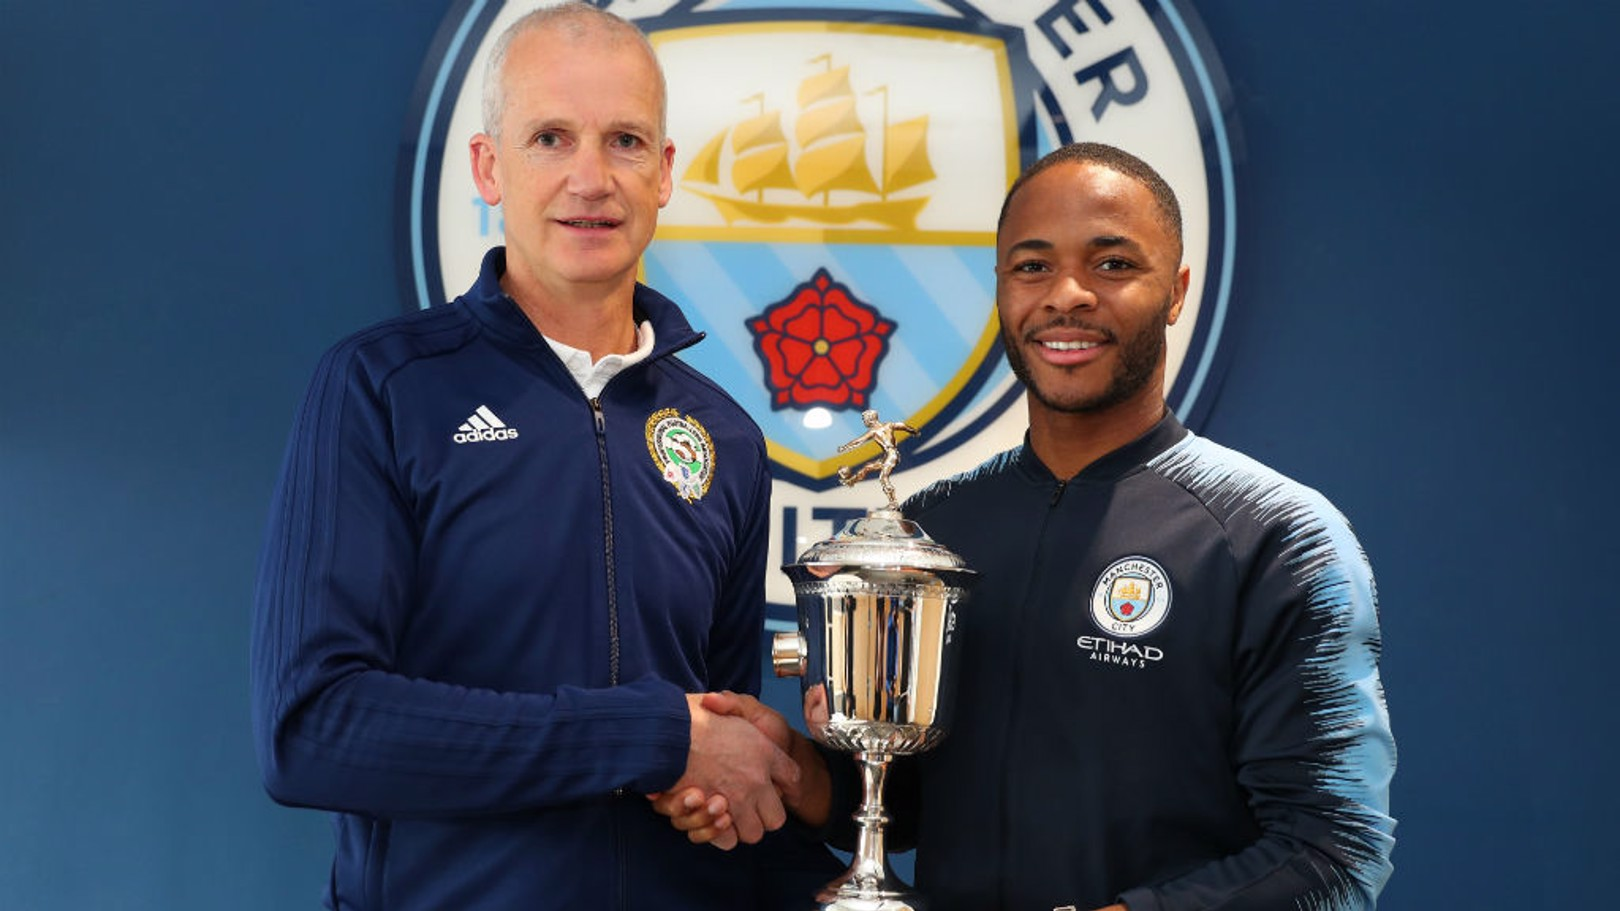 PFA AWARDS: Raheem Sterling won this year's Young Player of the Year prize